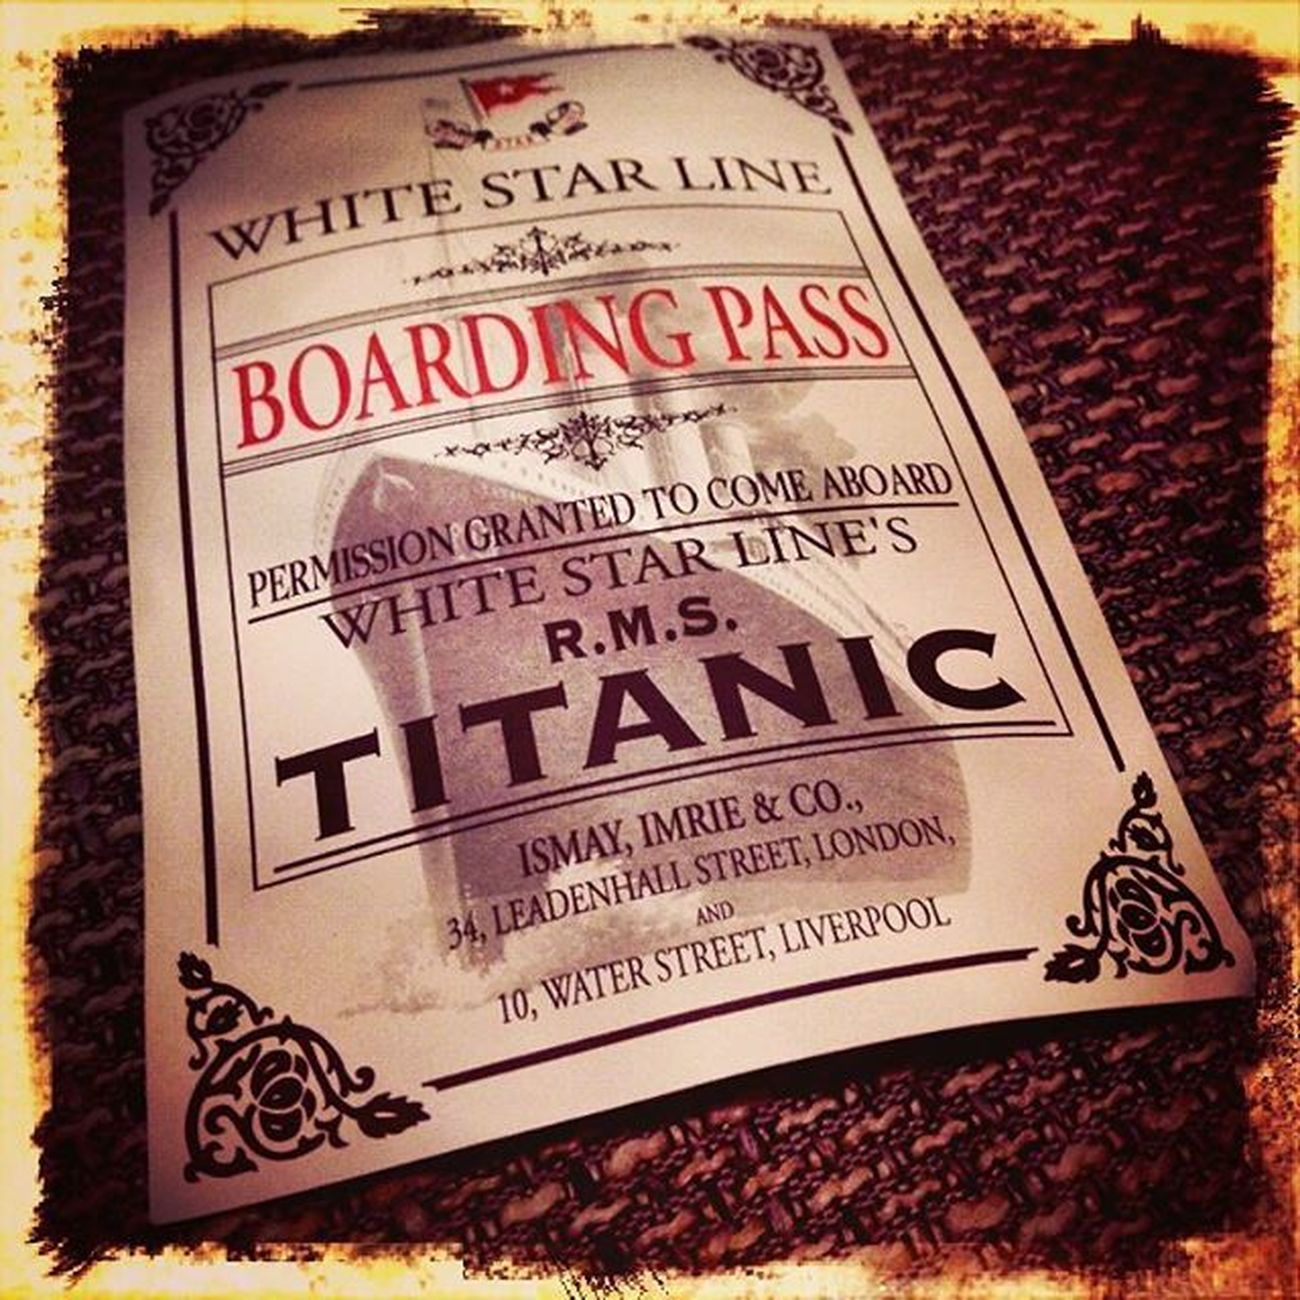 Titanic Titanicexhibition Boardingpass Whitestarline Eisberg Iceberg Lifeboat Shipofdreams Unsinkable Atlanticocean History 1912 Terrible Ship Linz Austria Tabakfabrik